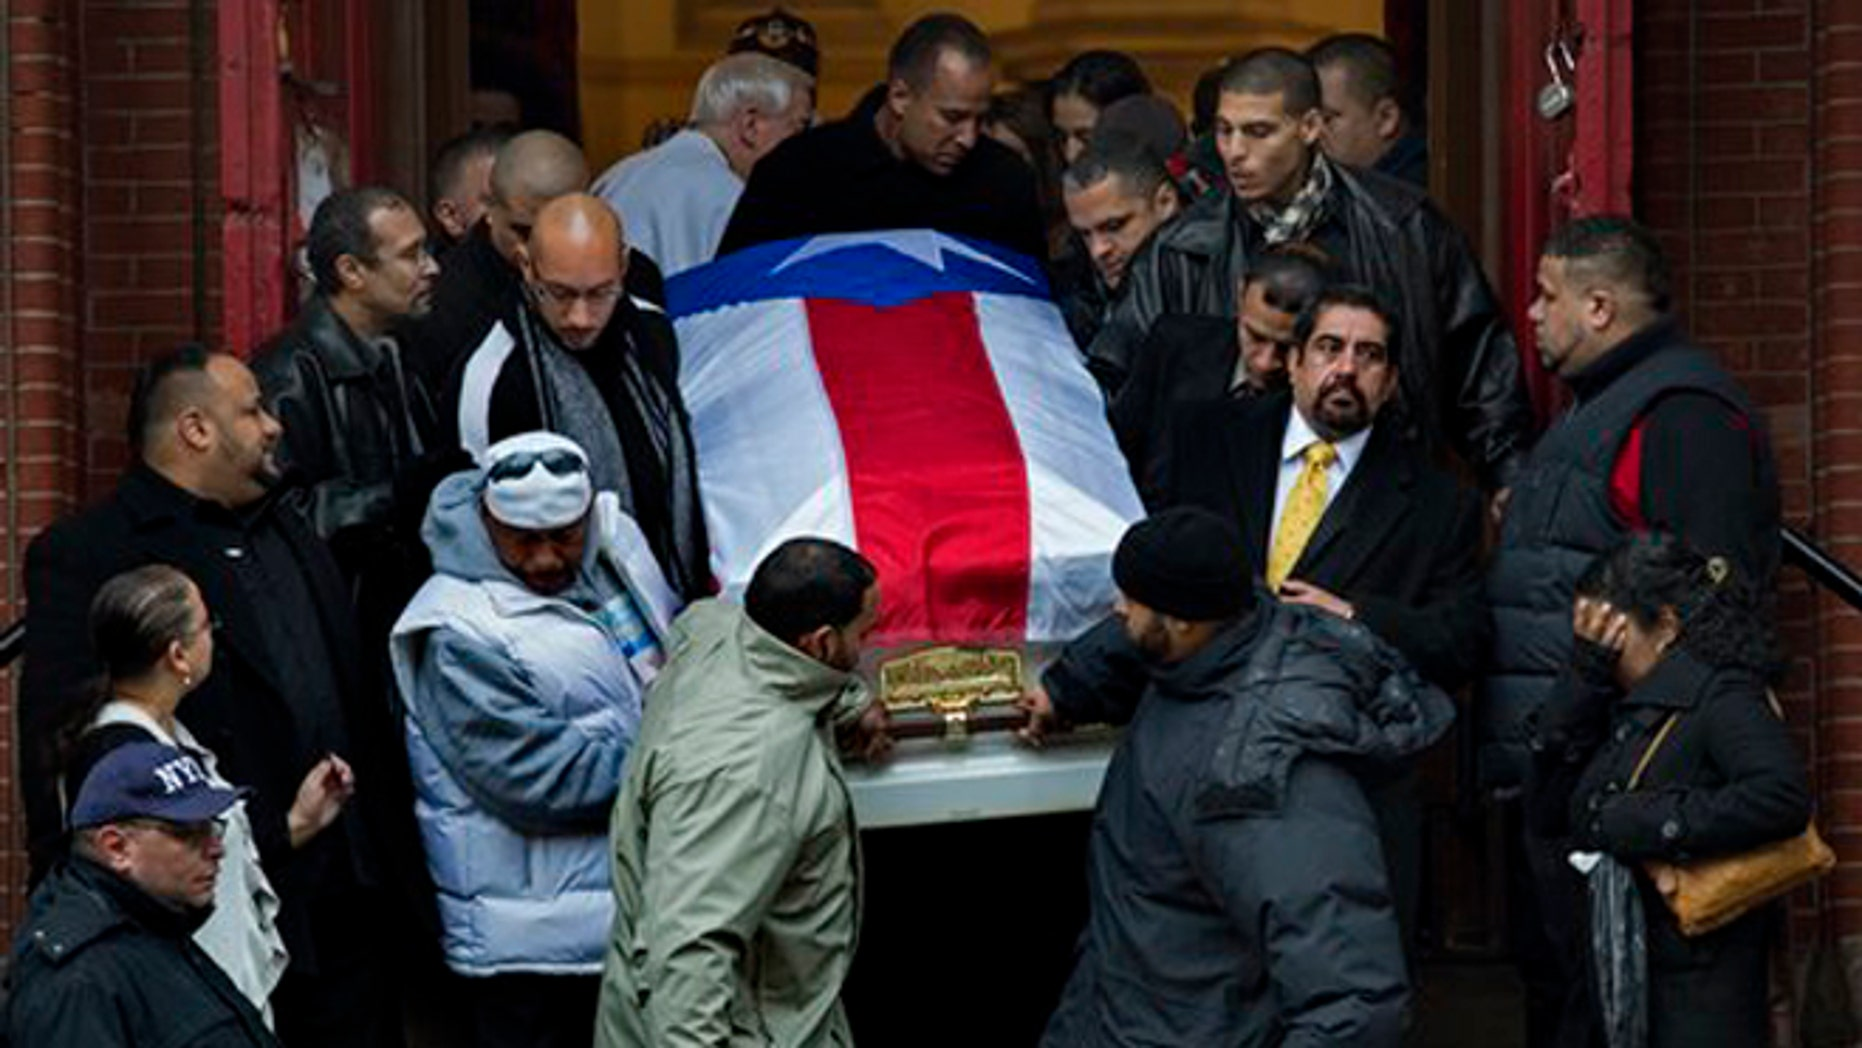 """Hector """"Macho"""" Camacho's casket is brought down the steps of St. Cecilia's Roman Catholic Church in New York after his funeral Saturday, Dec. 1, 2012. (AP Photo/Craig Ruttle)"""